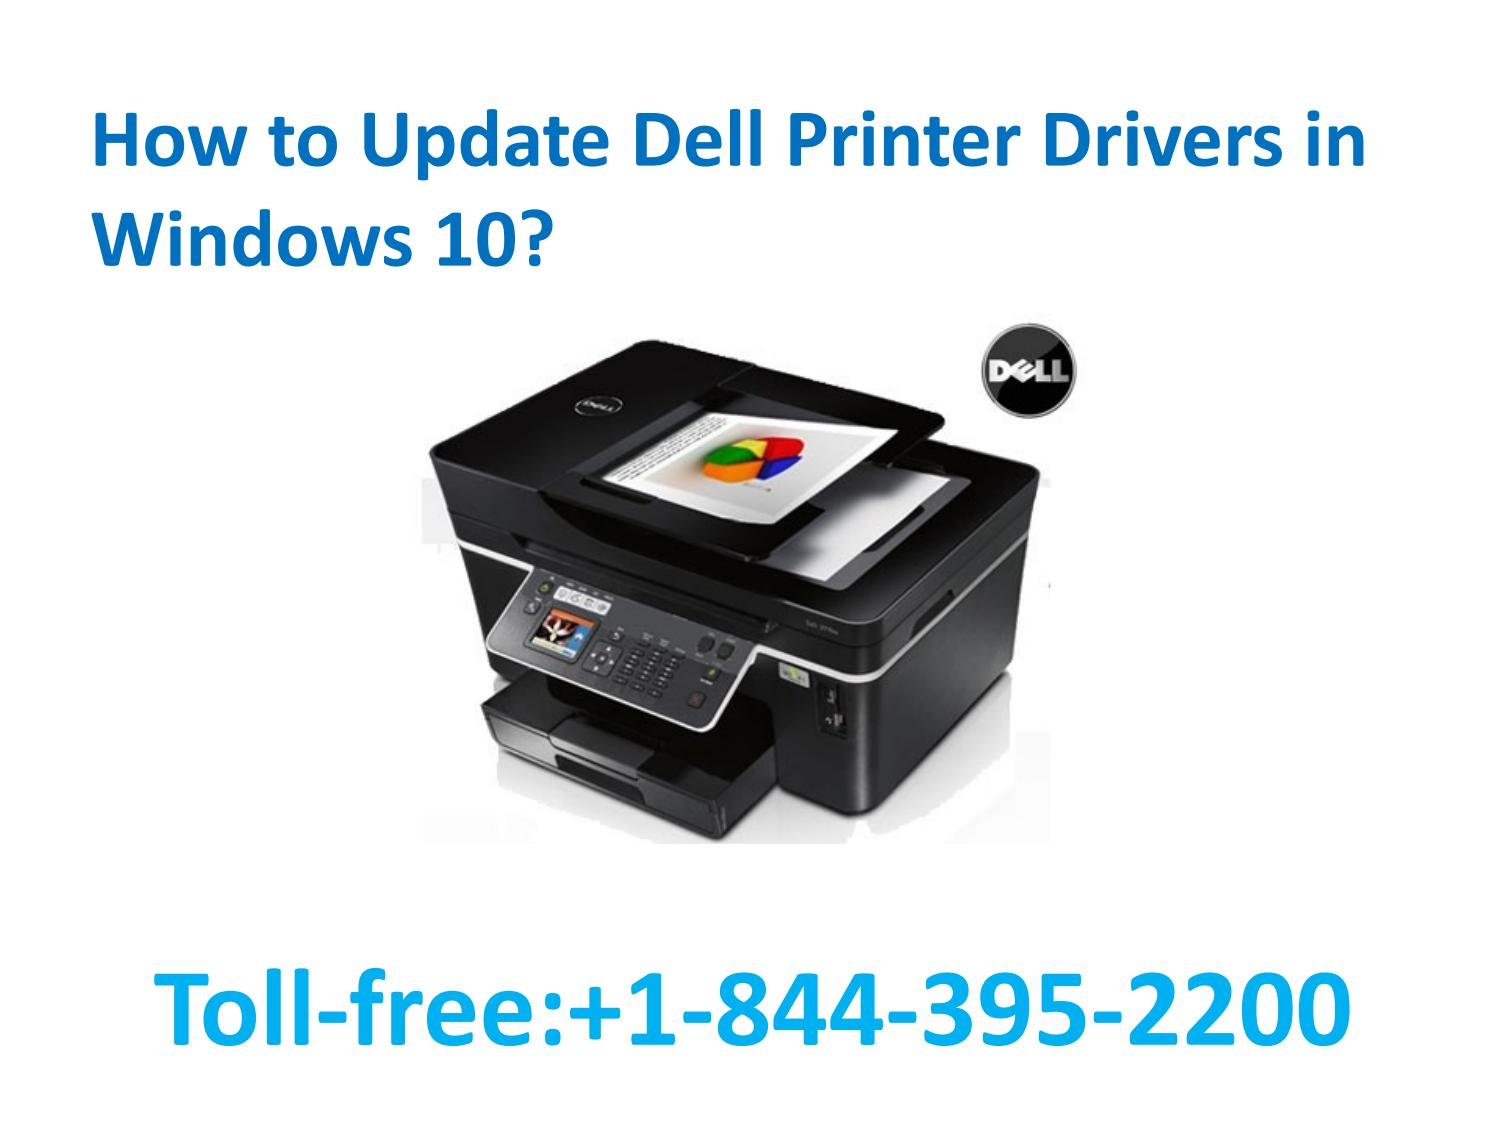 How to Update Dell Printer Drivers in Windows 10? by Dell Customer